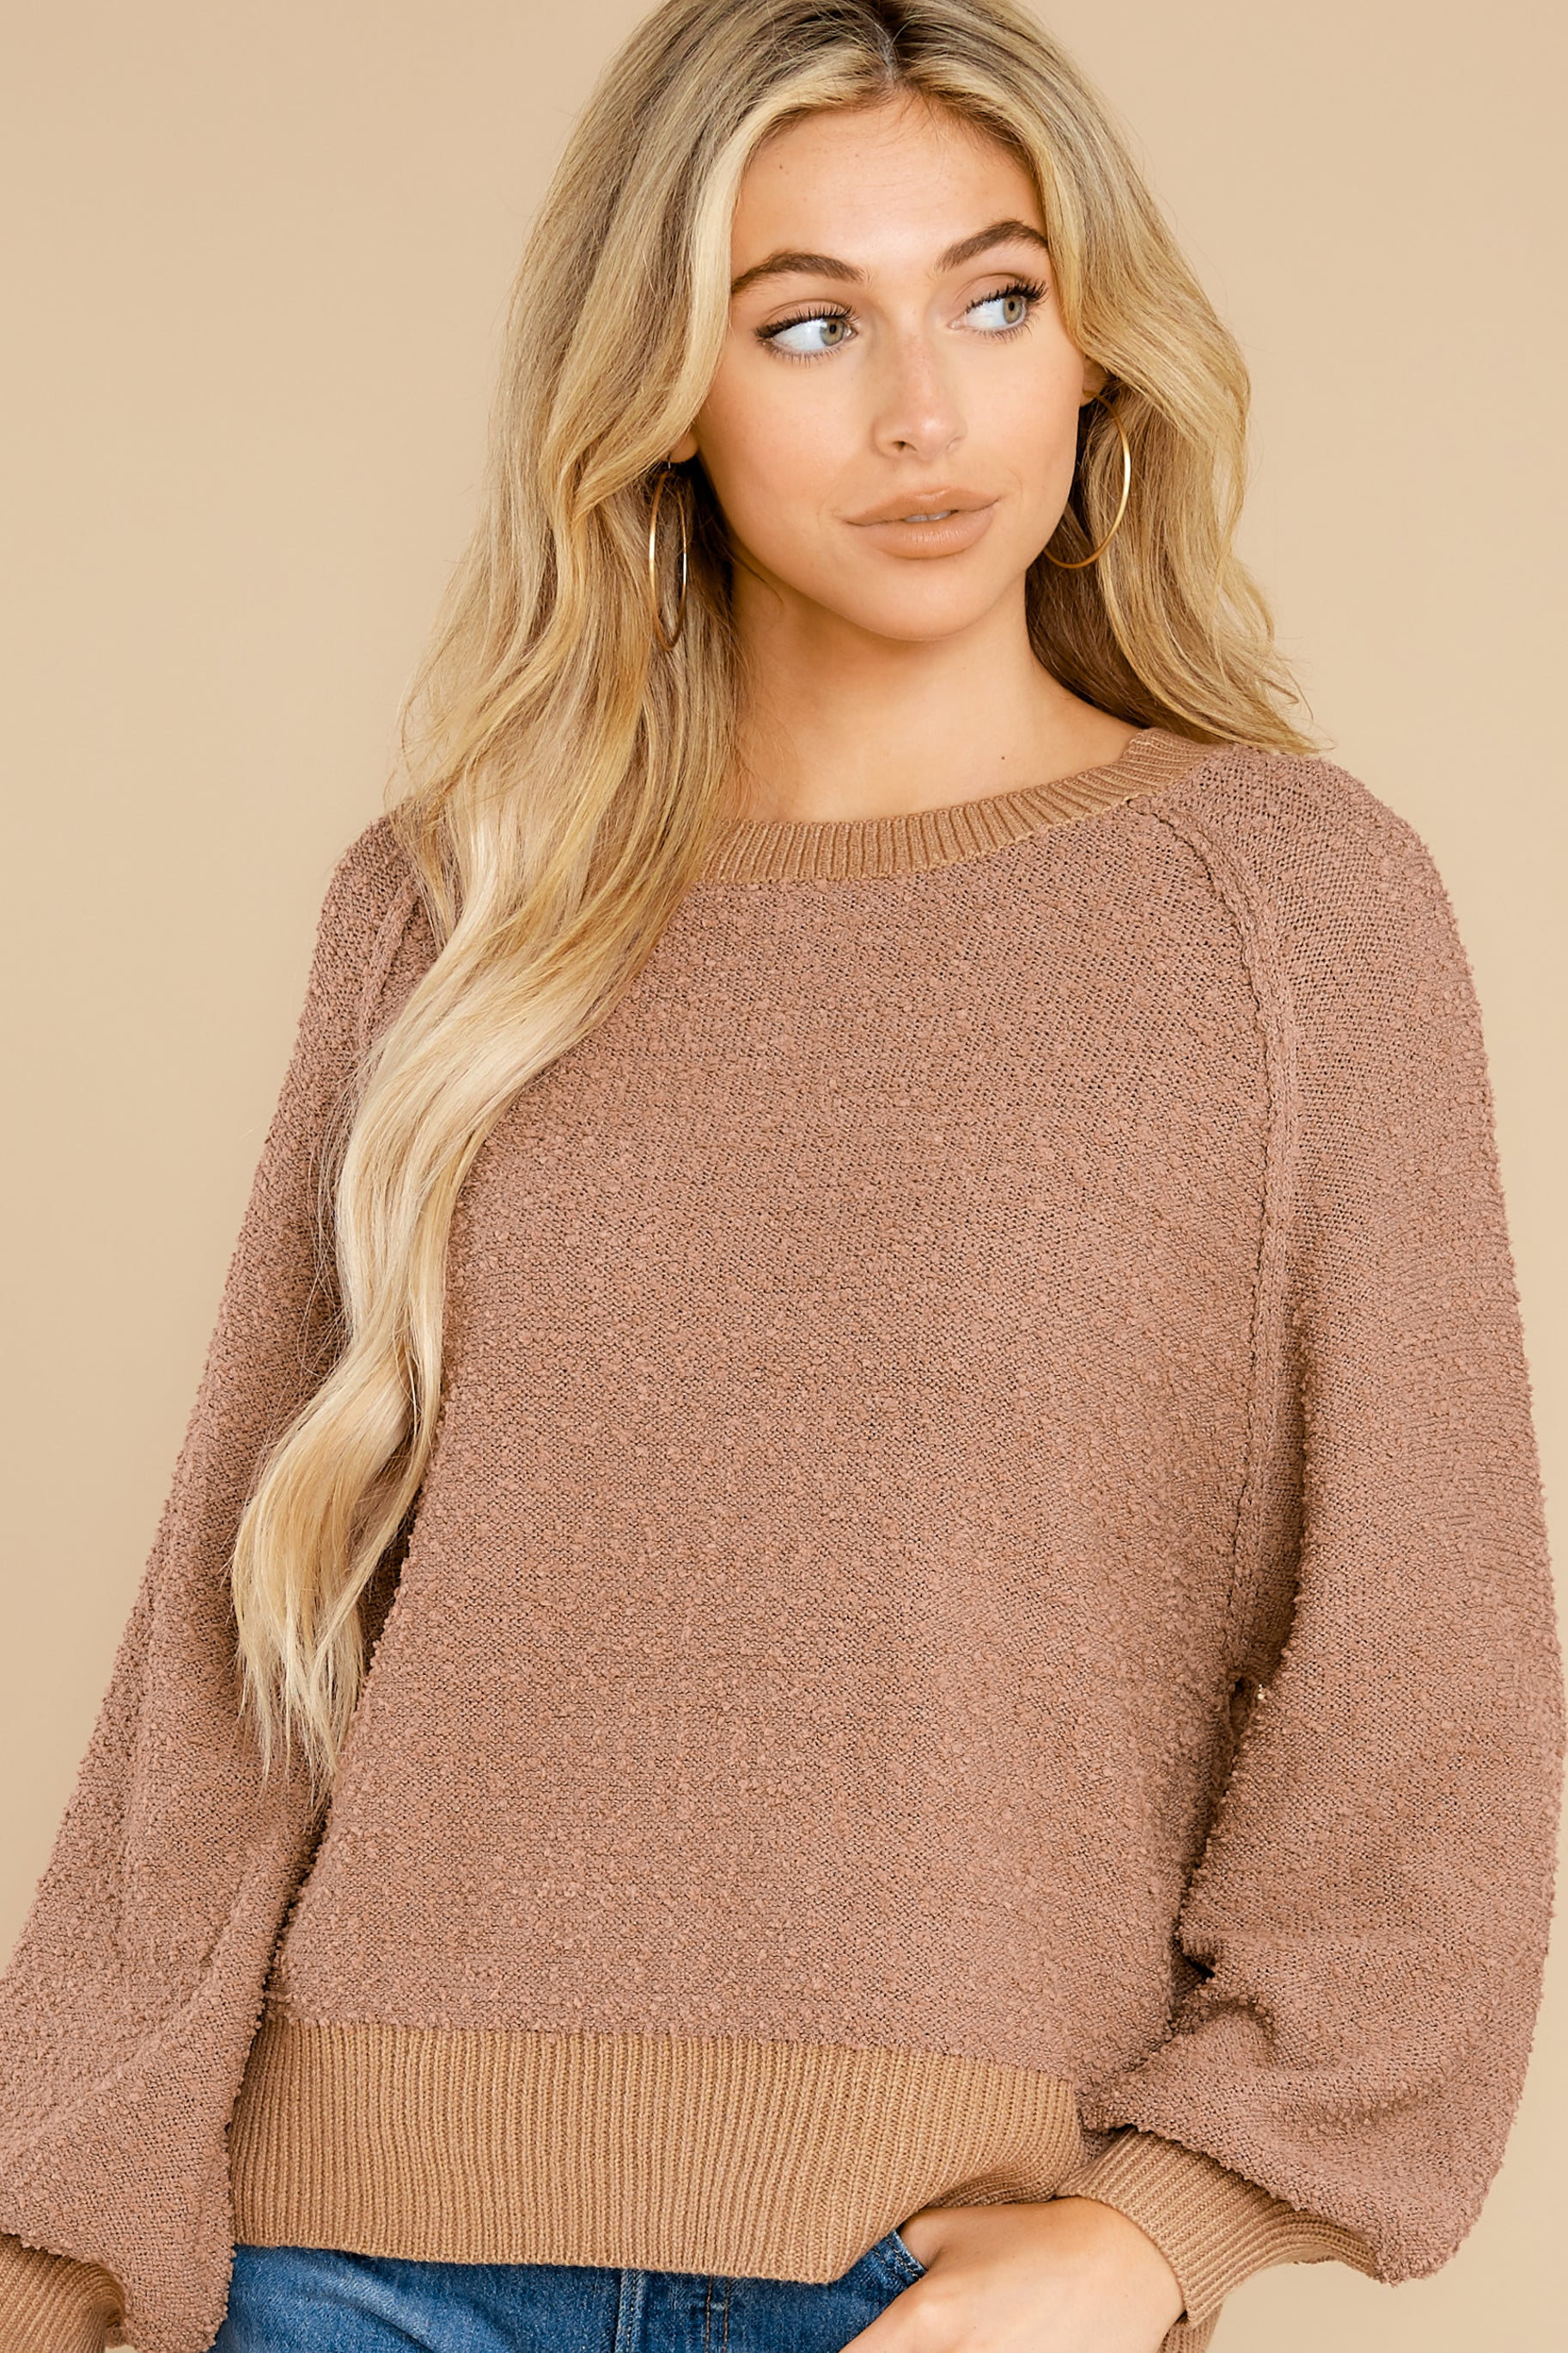 2 Feeling Carefree Mocha Sweater at reddress.com